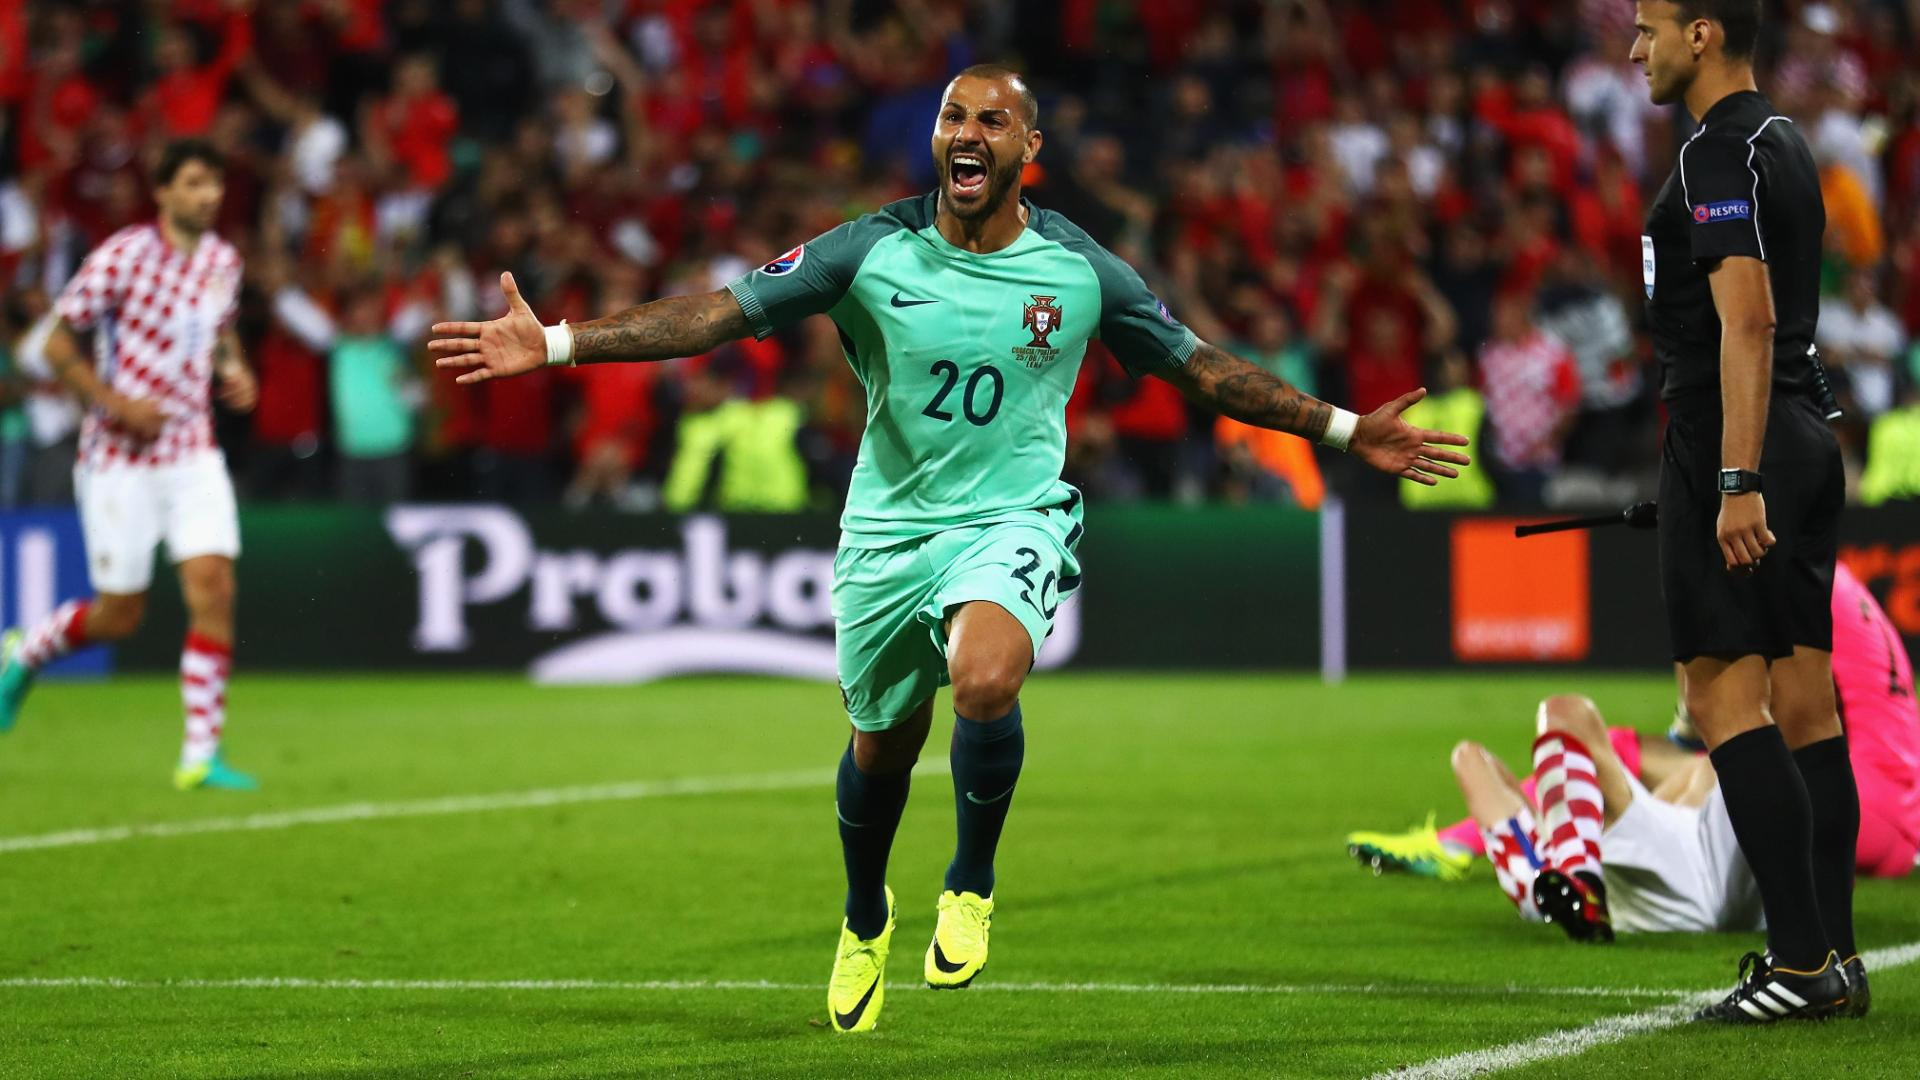 Quaresma's extra-time goal sends Portugal into the quarterfinals